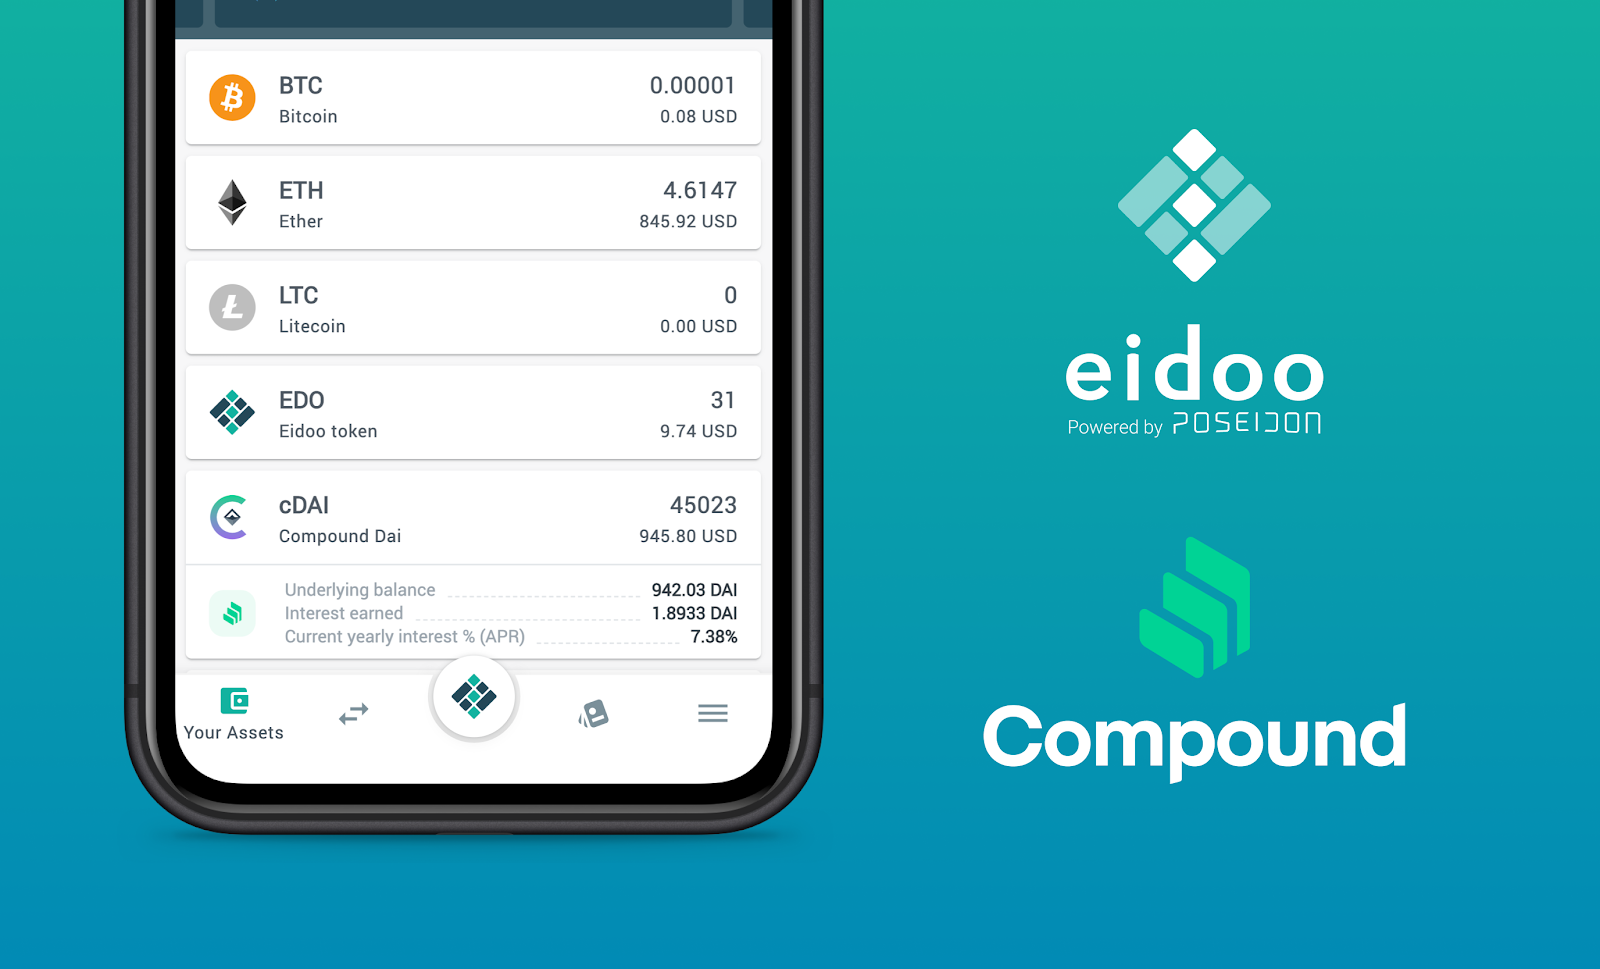 eidoo compound